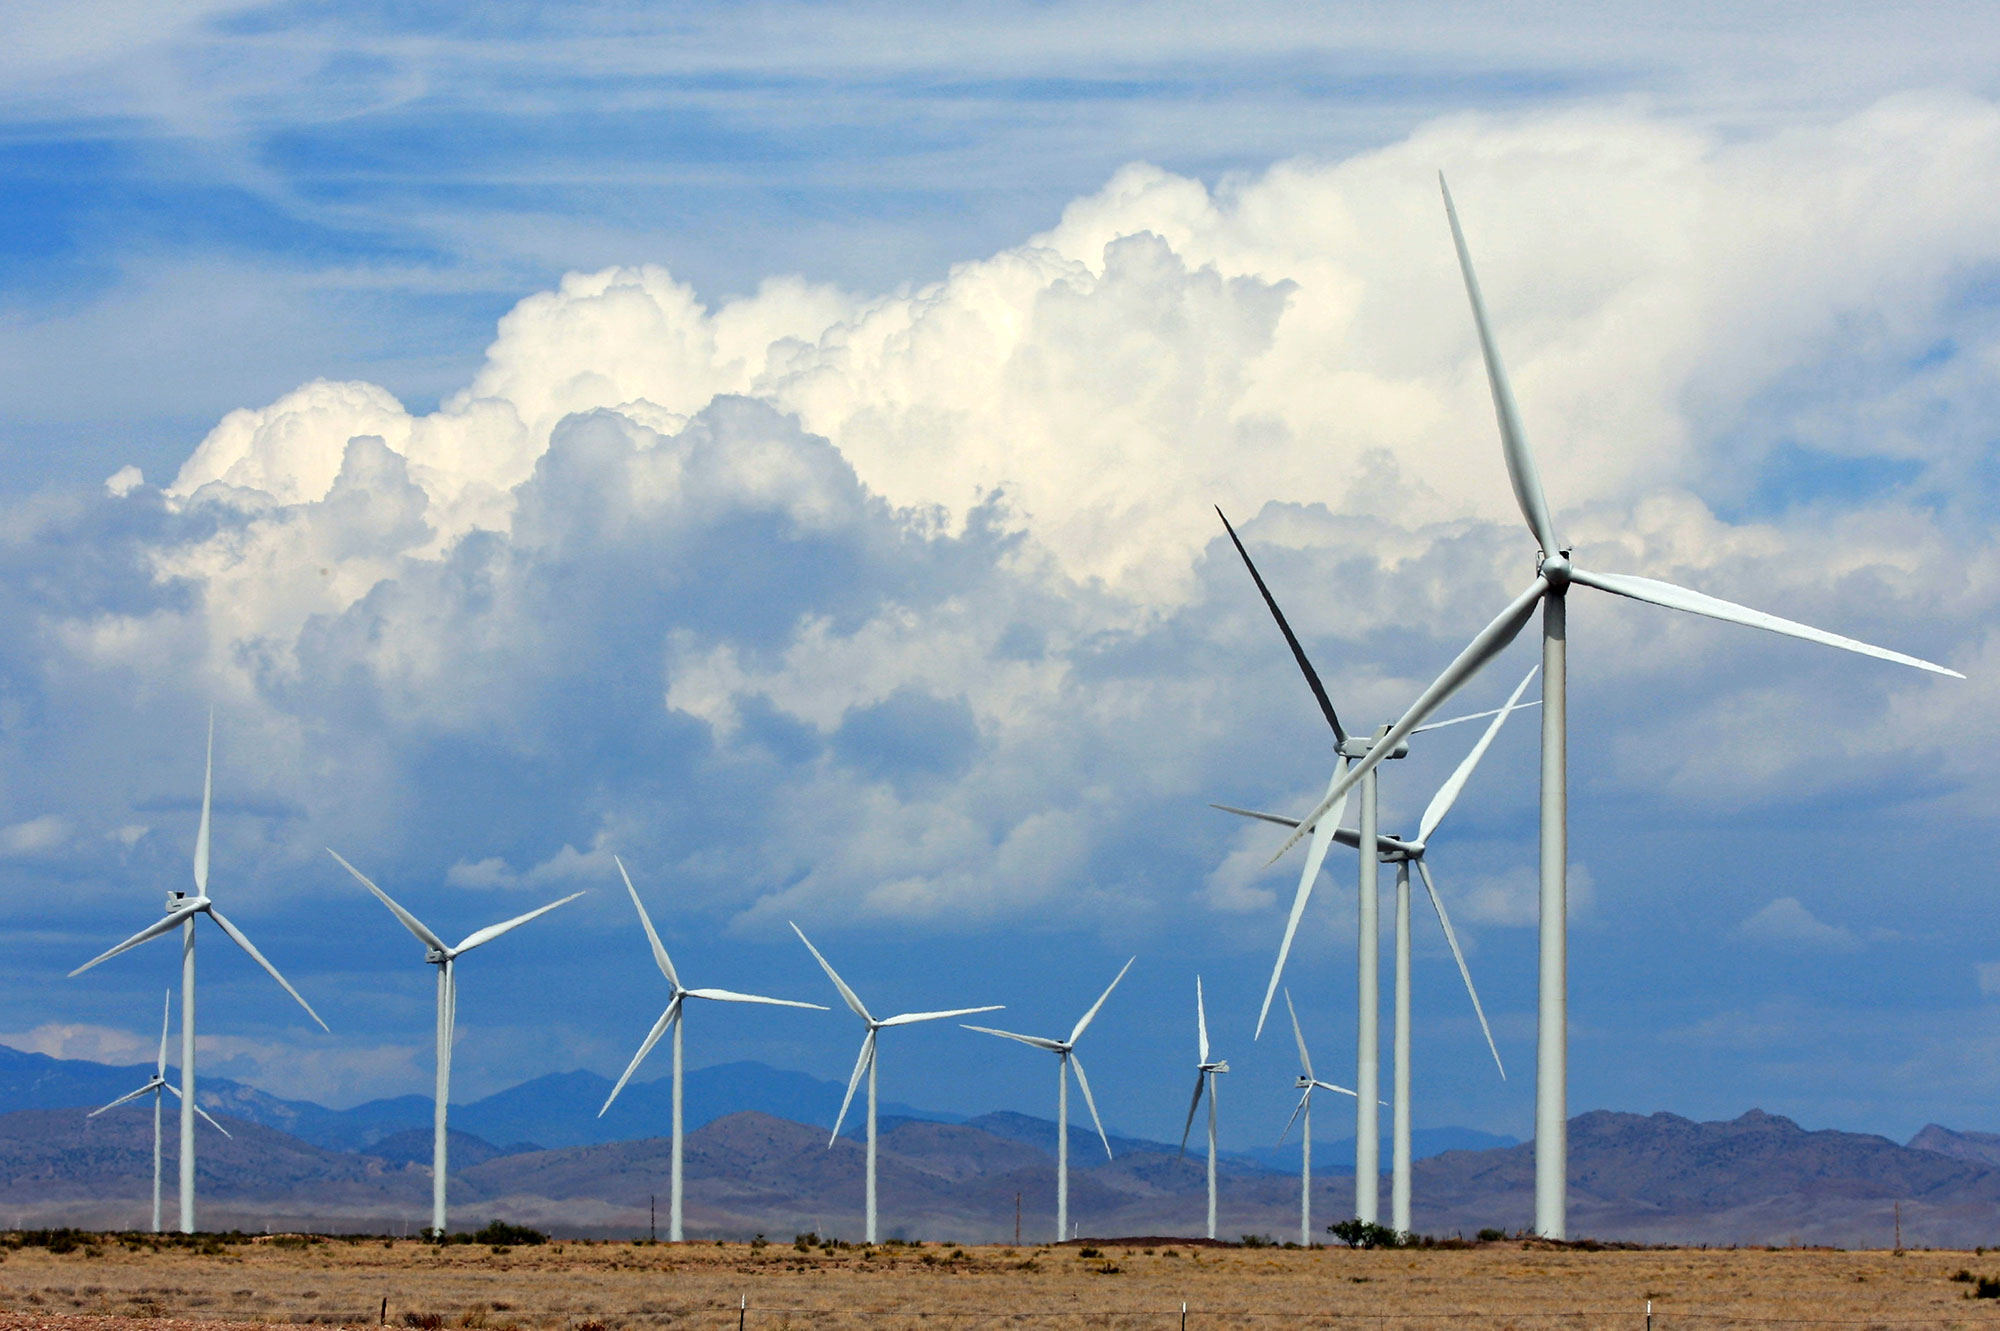 Macho Springs Wind Farm, near Nutt, NM.